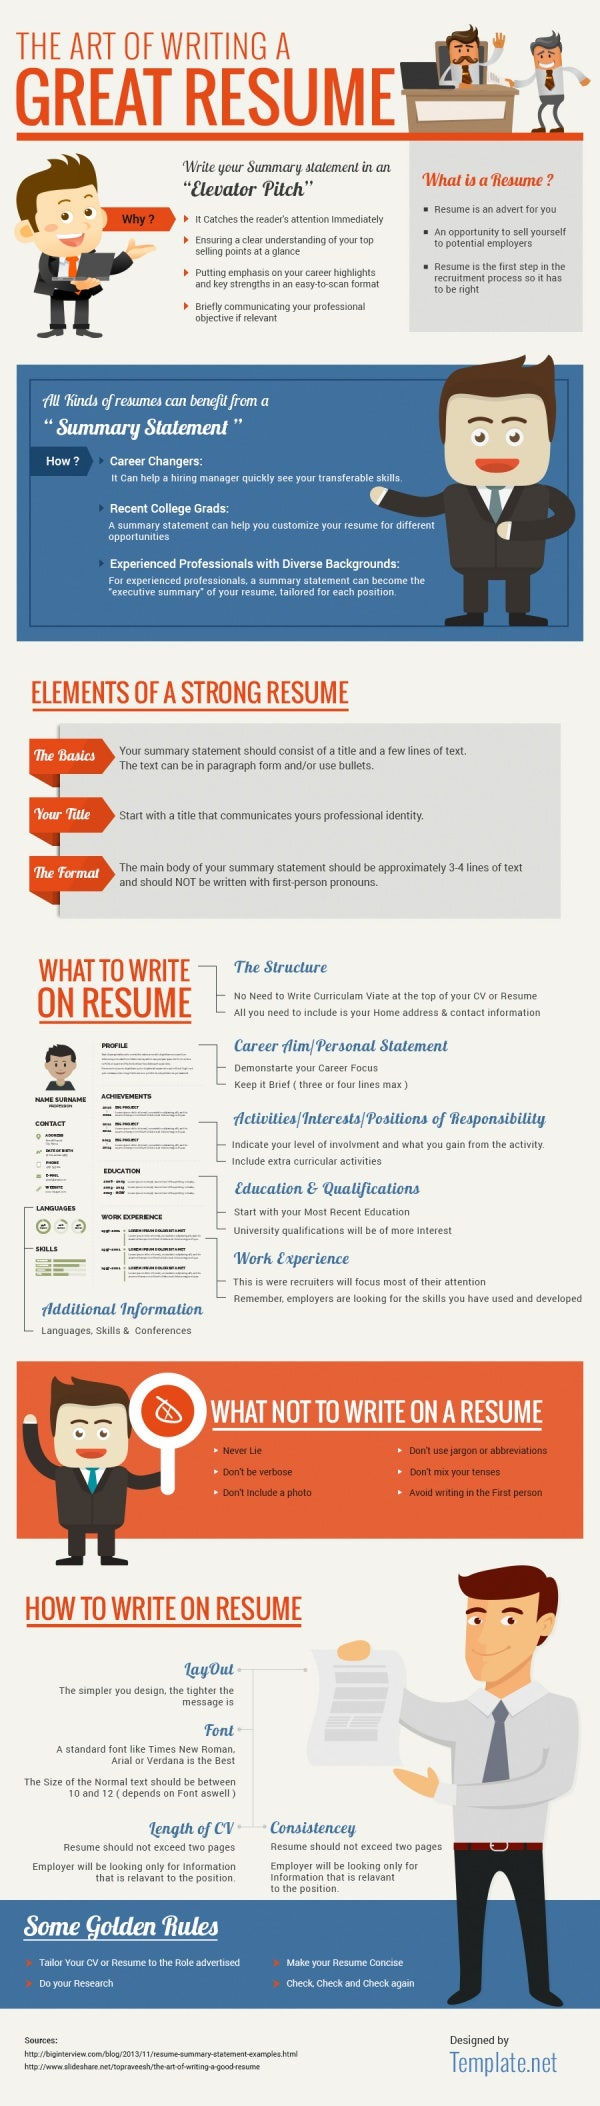 federal government resume software writers government resume samples cover letter federal jobs resume sample government resume samples cover letter federal jobs resume sample